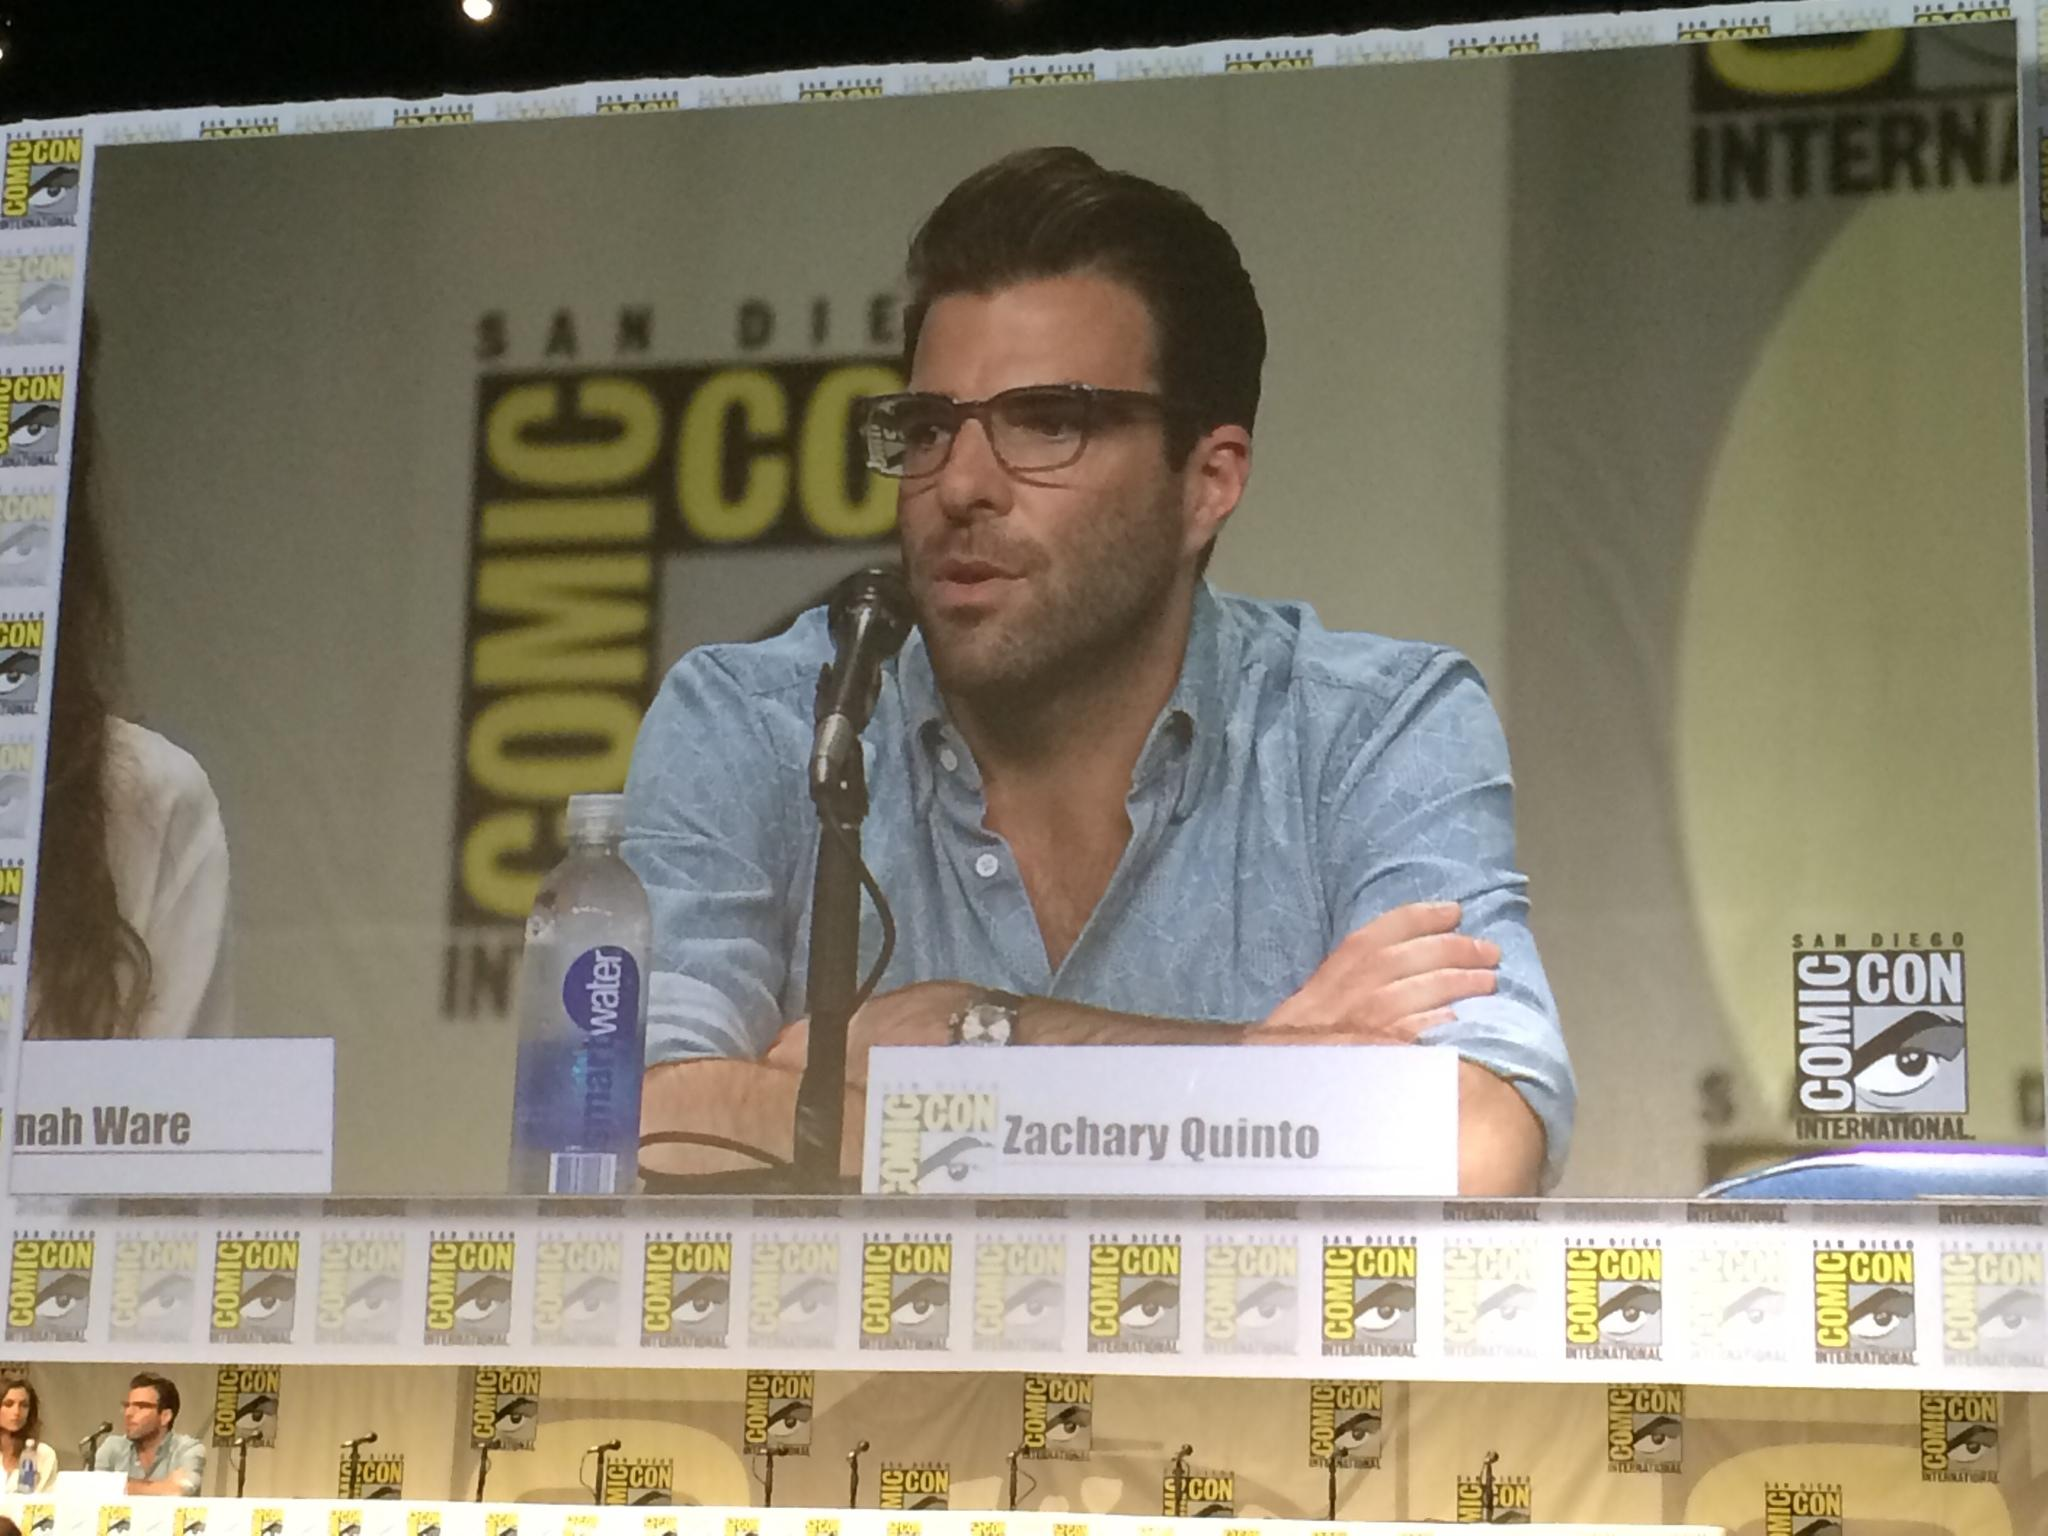 Twitter / Latinoreview: Zachary Quinto in Hall H for ...